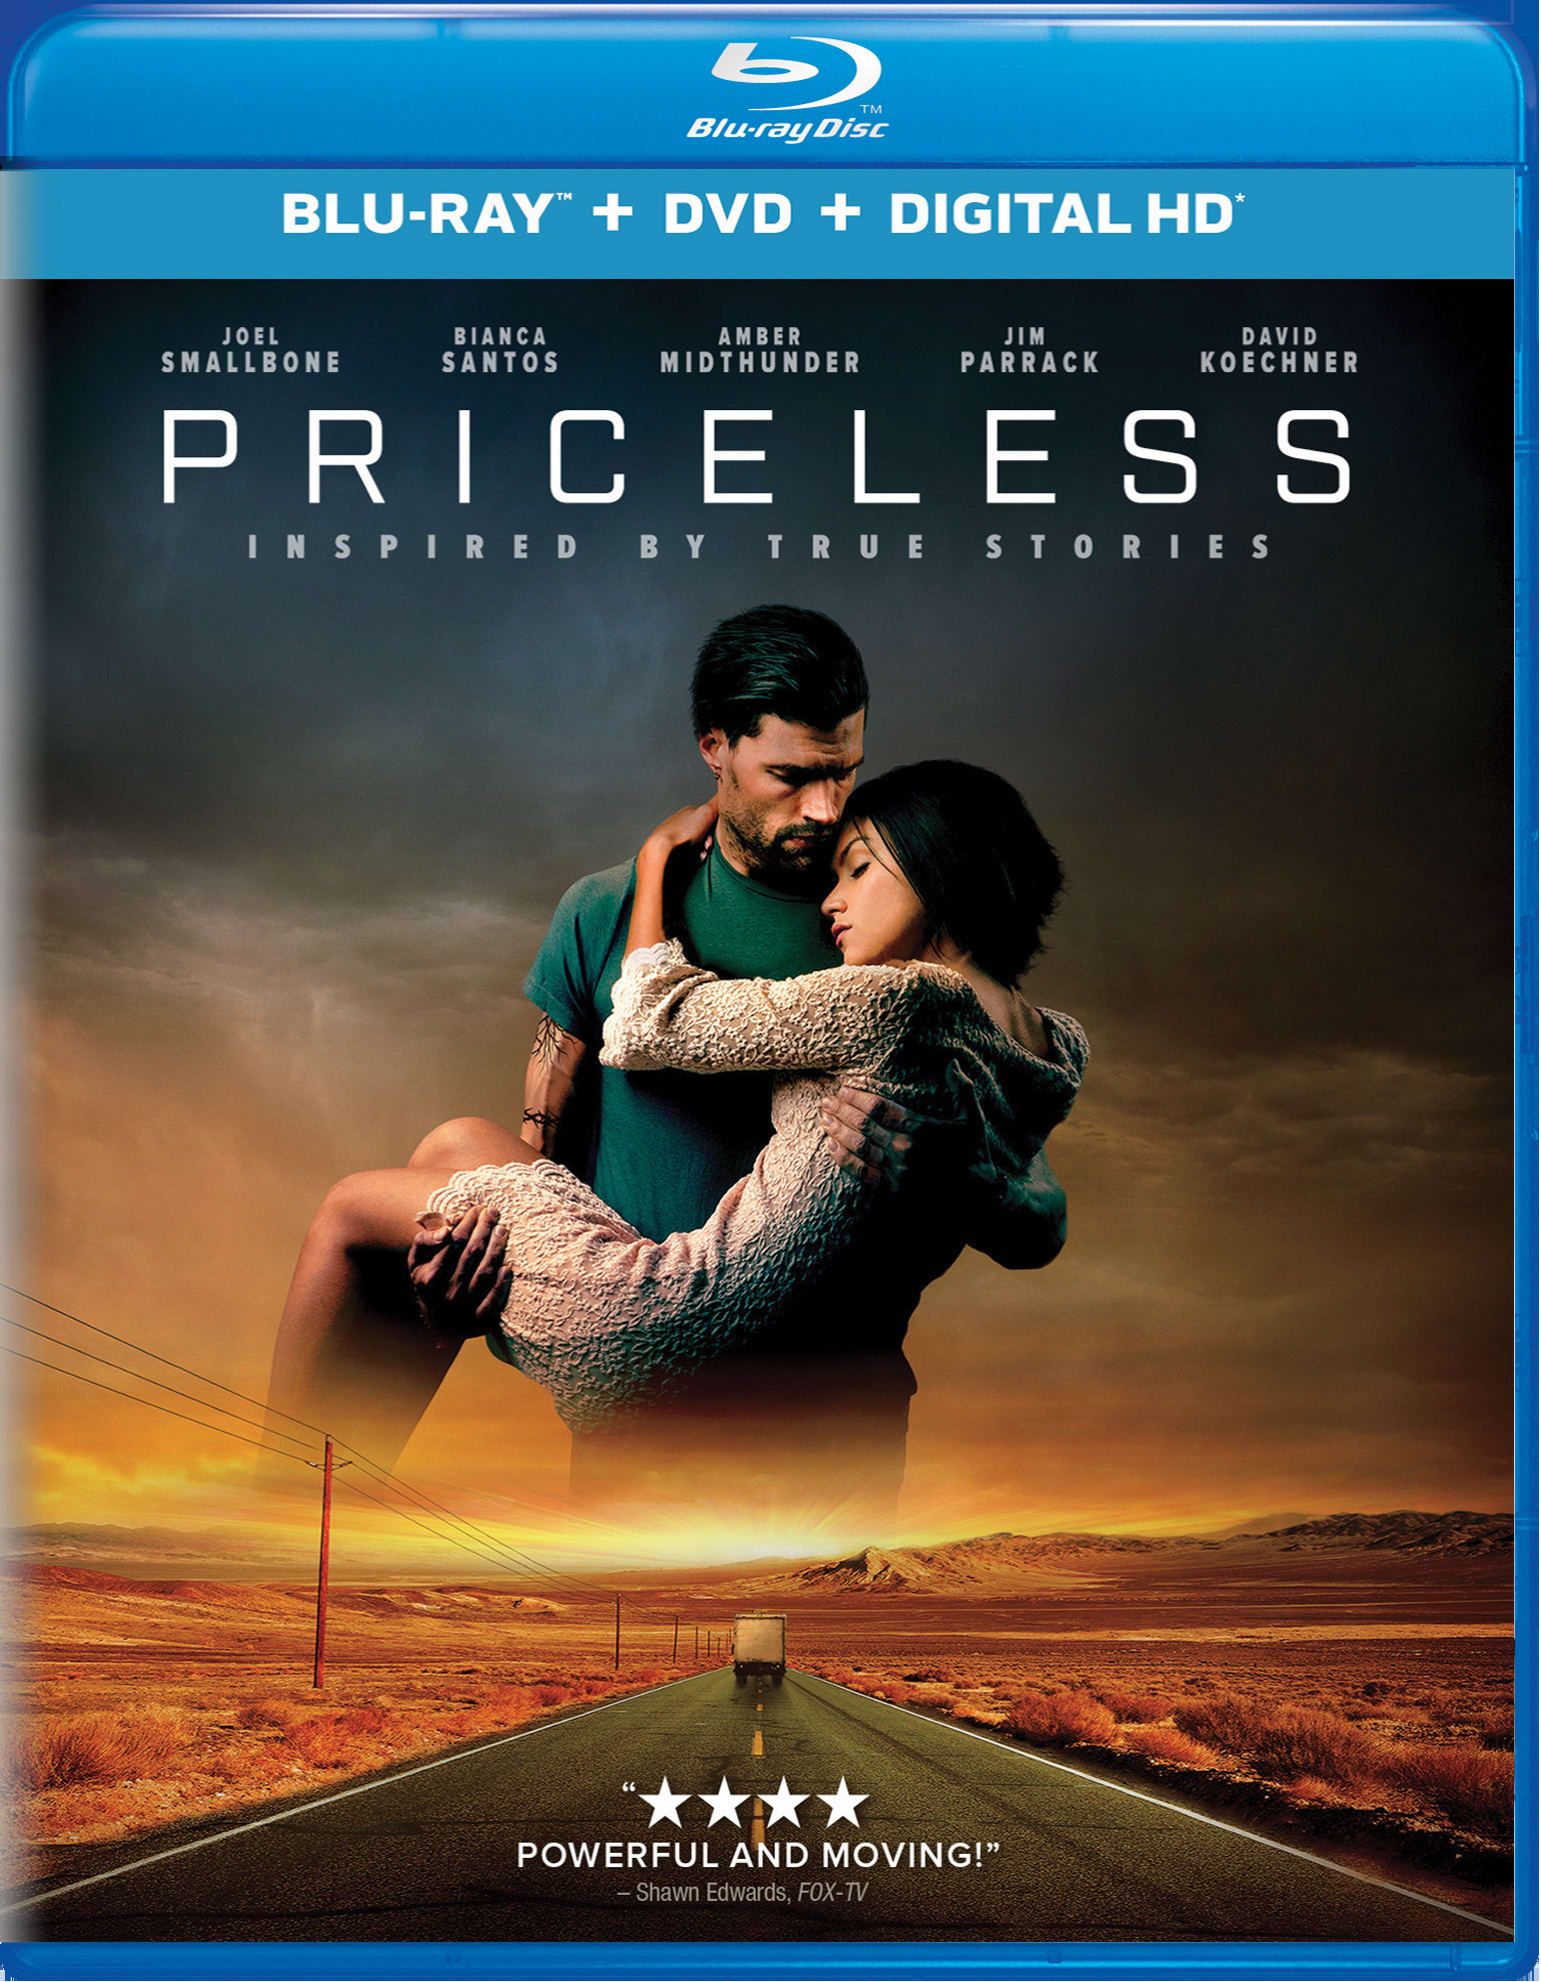 Priceless (DVD + Digital) [Blu-ray]